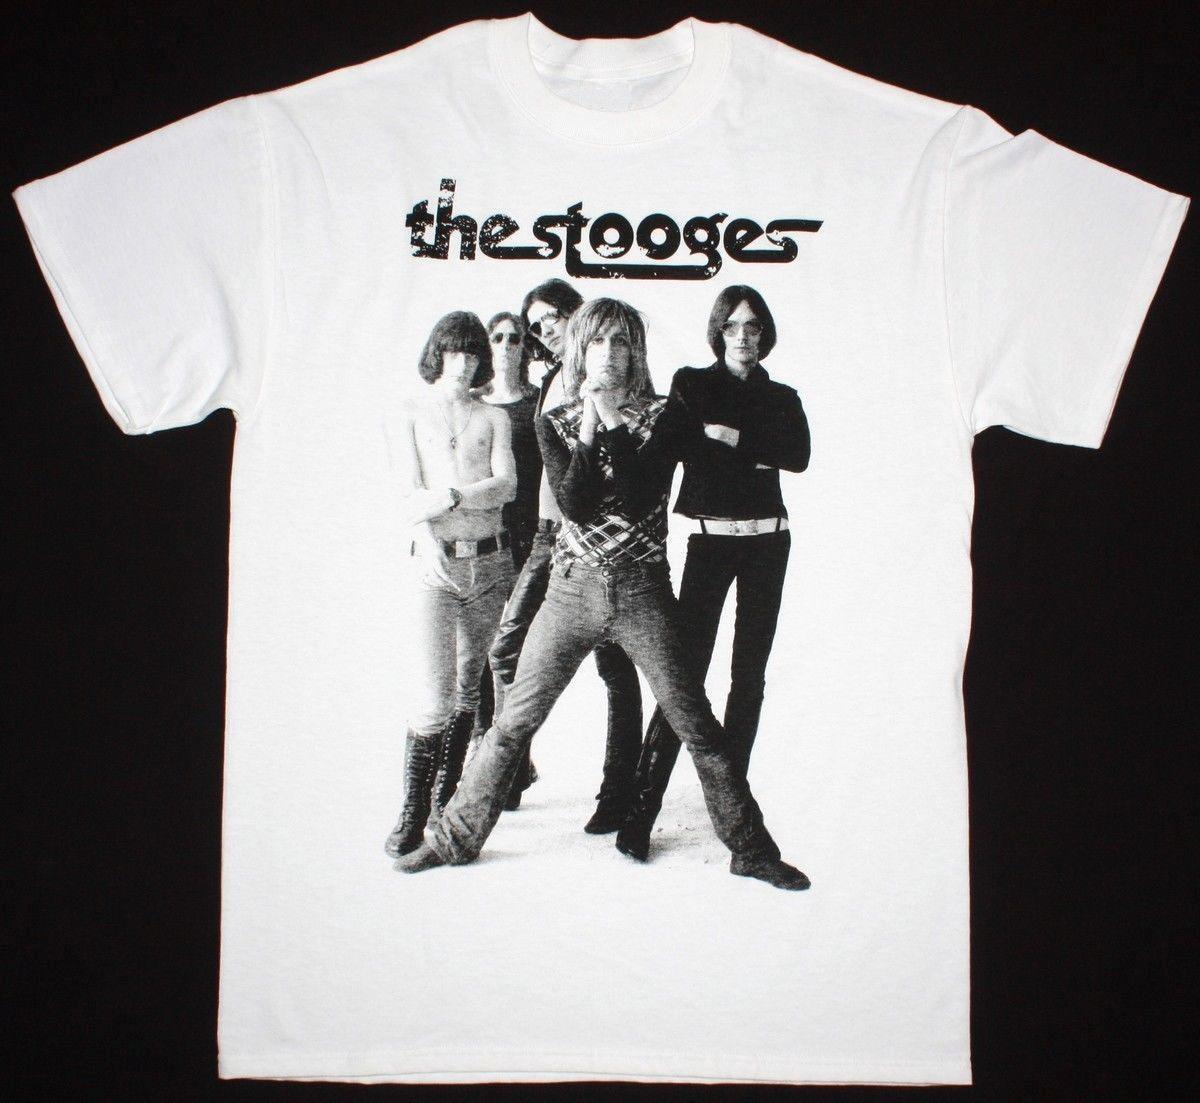 8692552303f7b5 THE STOOGES IGGY POP MENS WHITE T SHIRT PROTO PUNK ROCK BAND TOM PETTY  MINUTEMAN Hilarious Shirts Funky T Shirts Online From Customizedshirts46